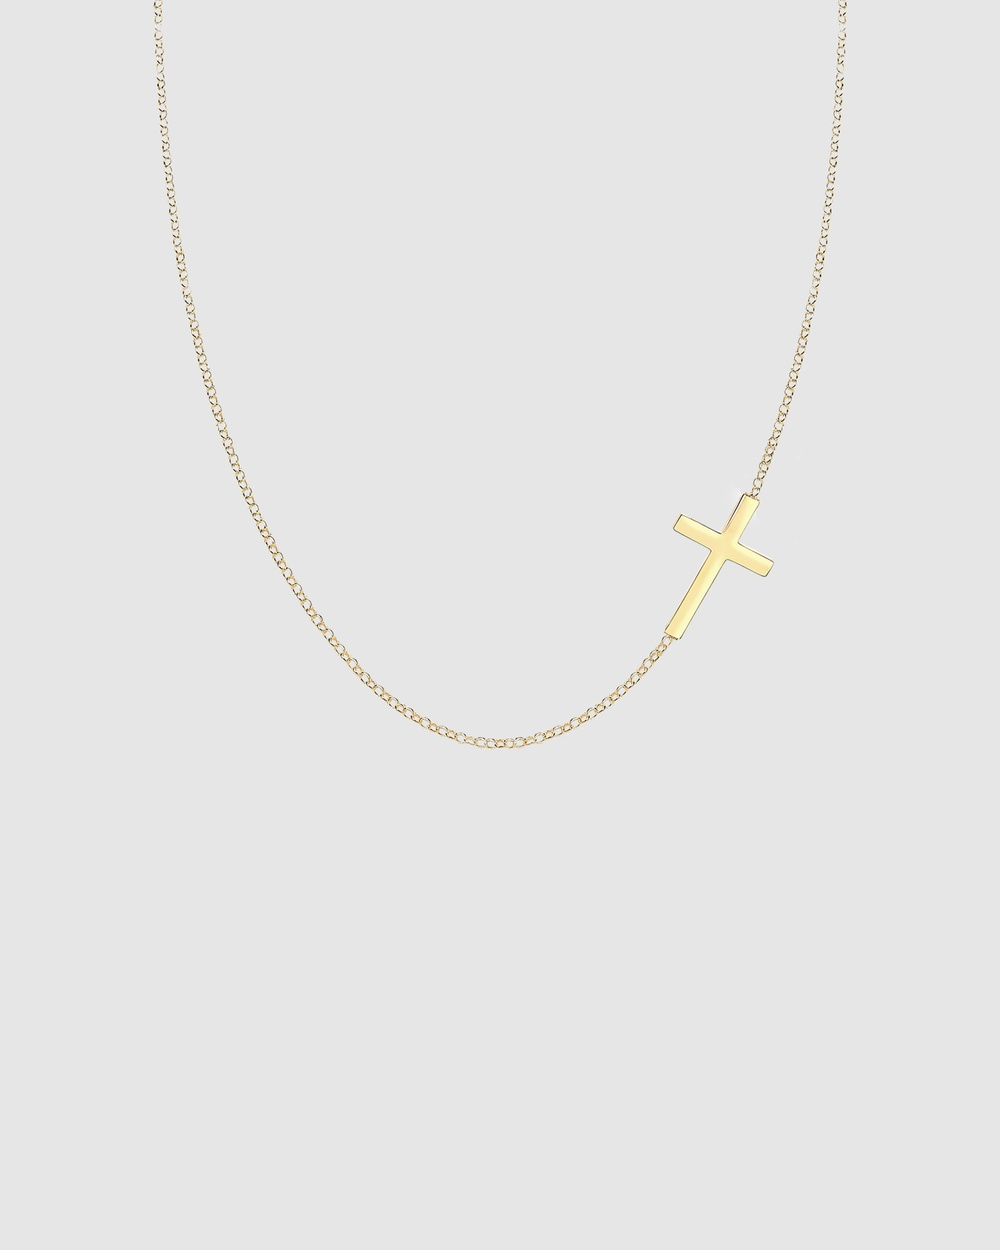 Elli Jewelry Necklace Cross Symbol 925 Sterling Silver Gold Plated Jewellery Gold Gold-Plated